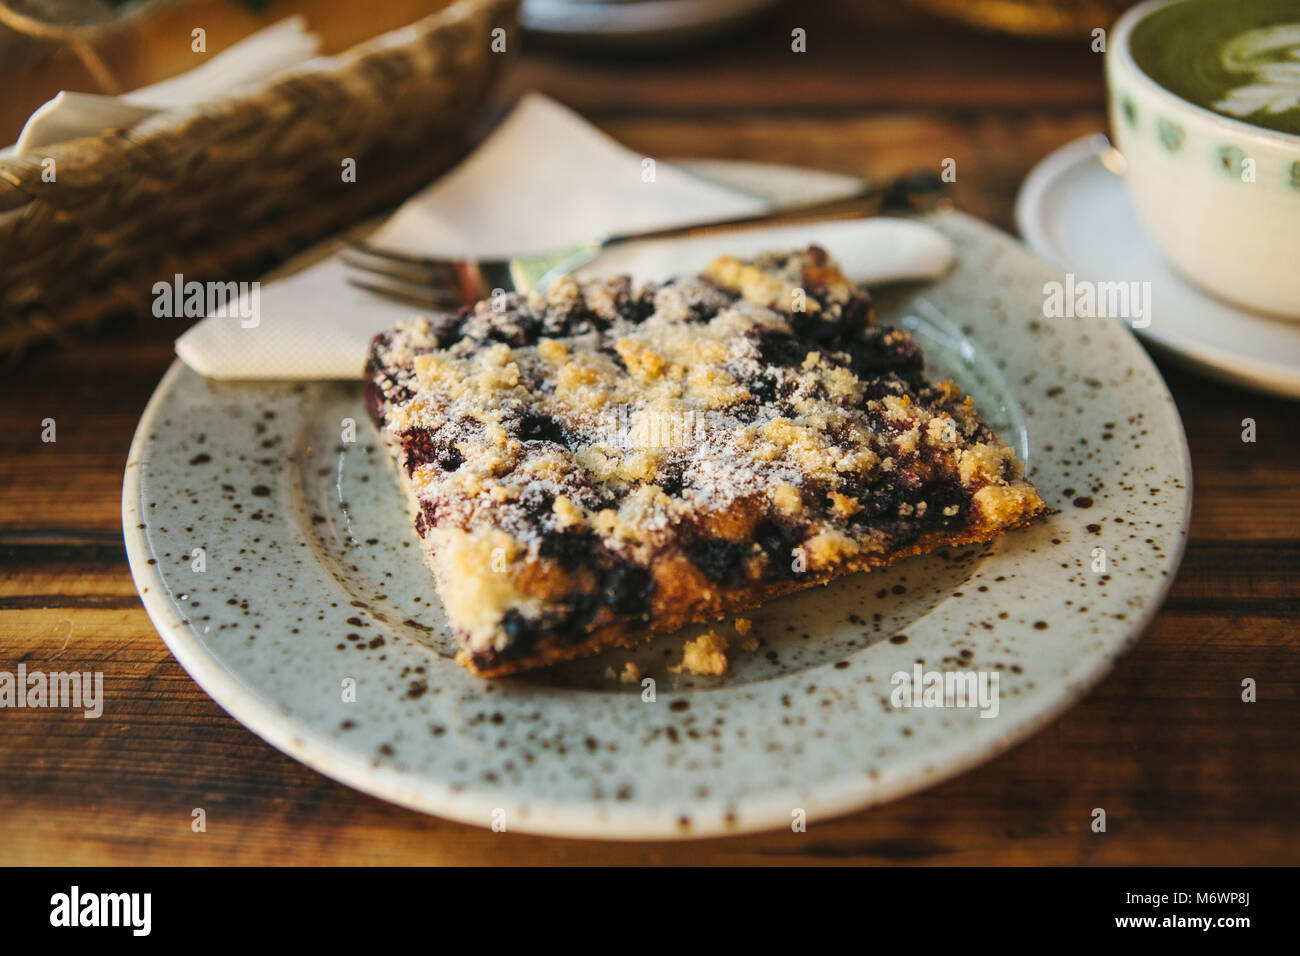 Close-up piece of sweet pie with dessert fork on saucer against background of blurry plates with food on wooden - Stock Image